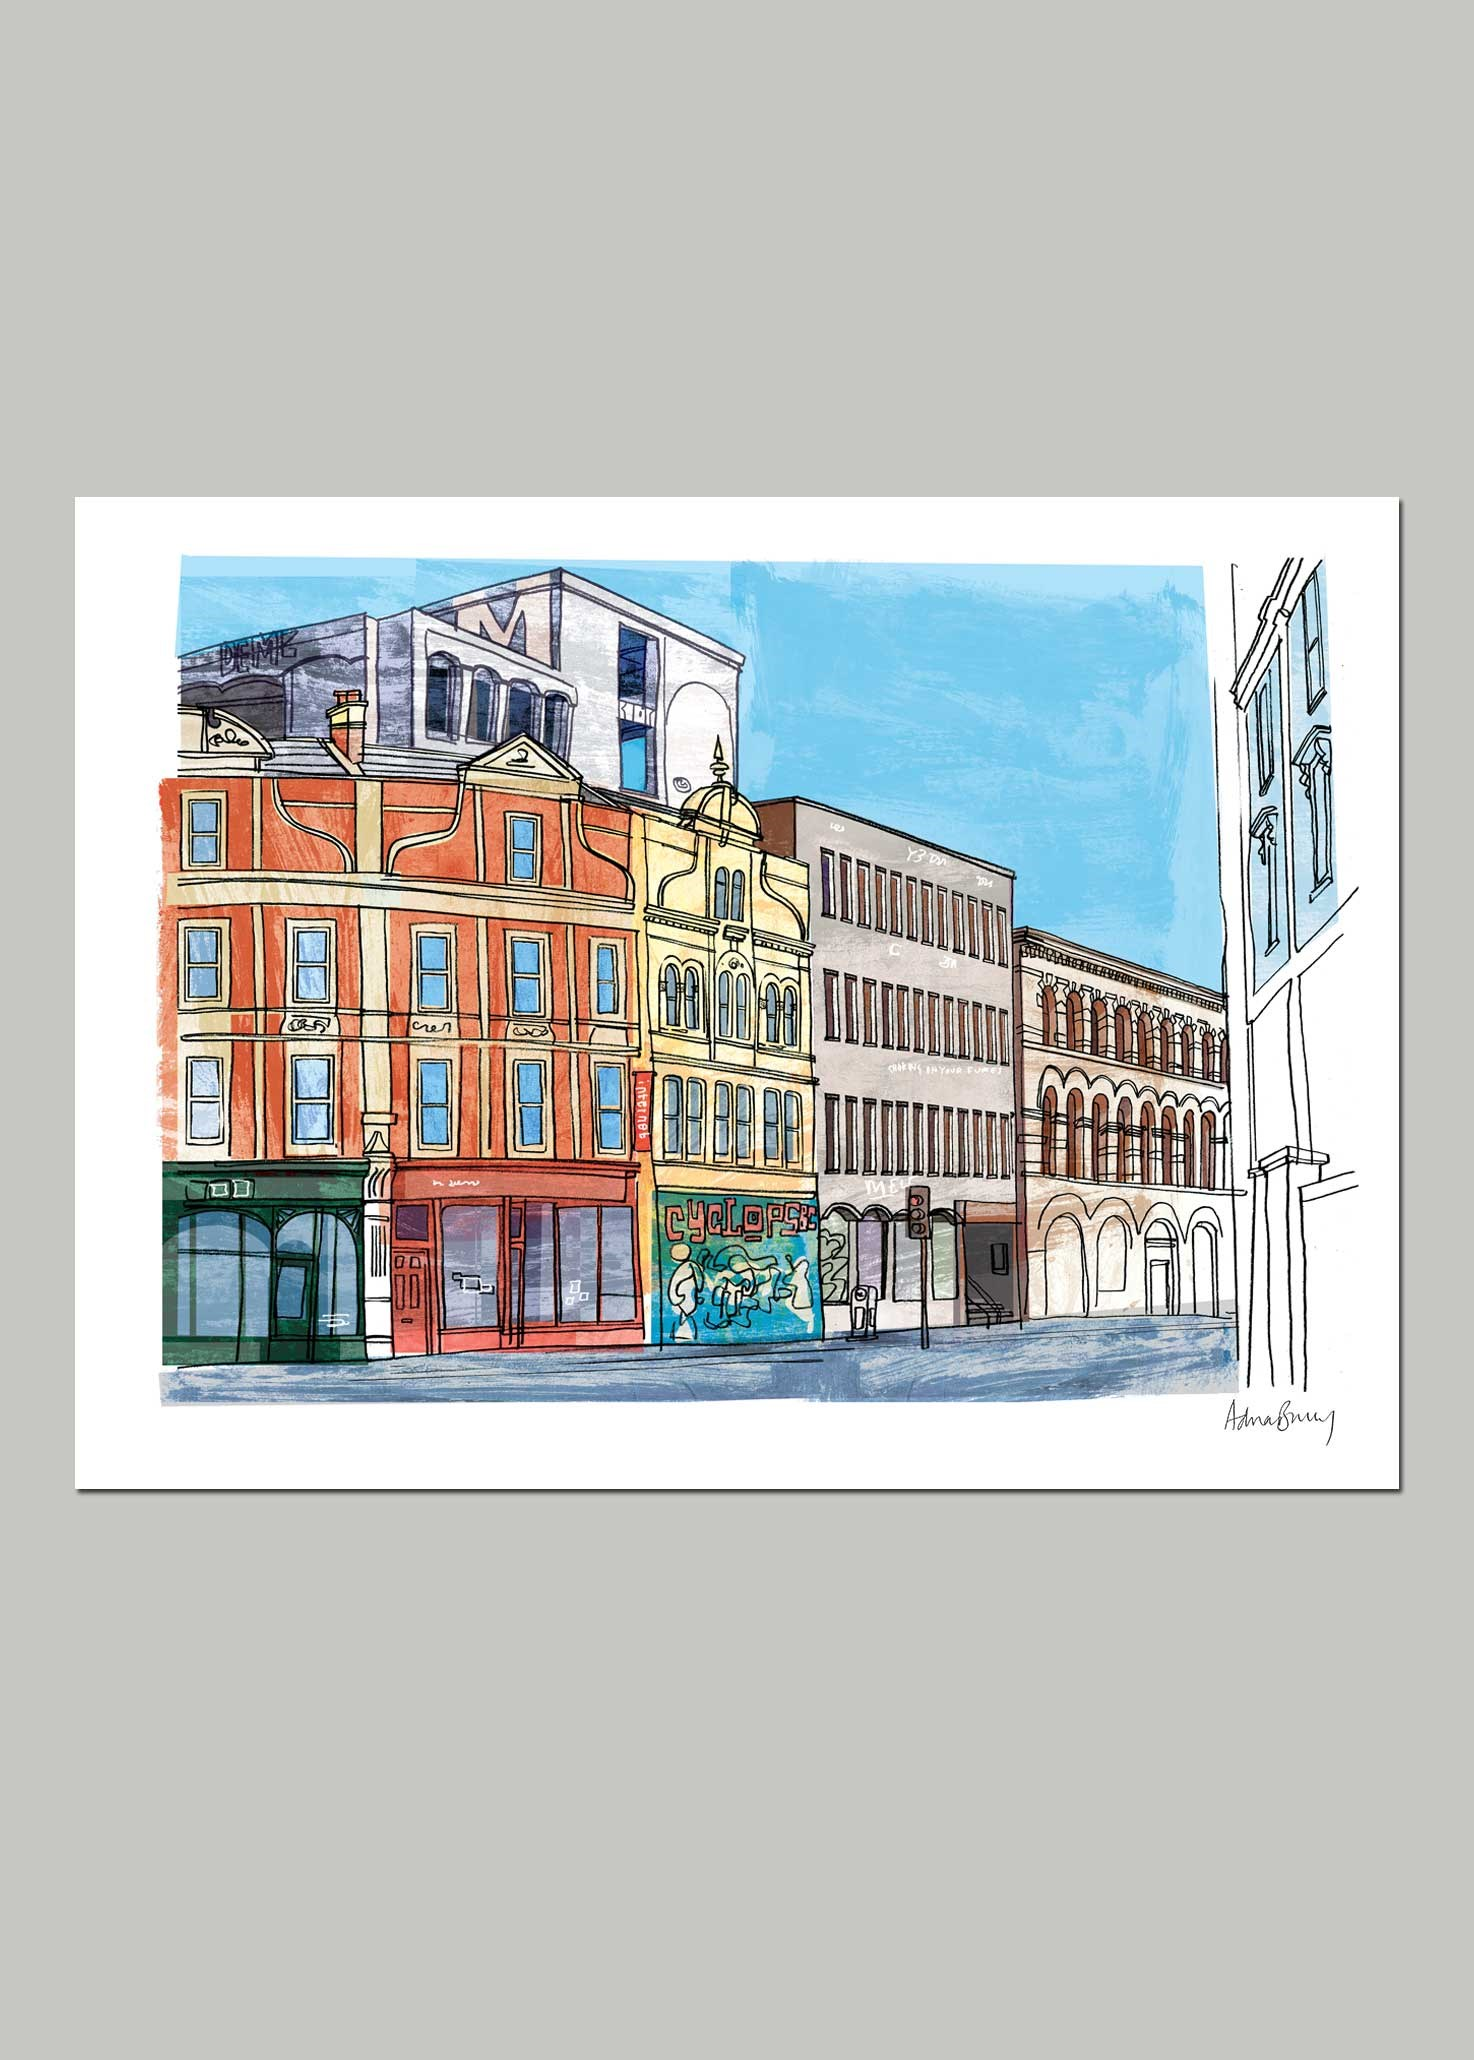 Westmoreland House, Stokes Croft by Adrian Barclay